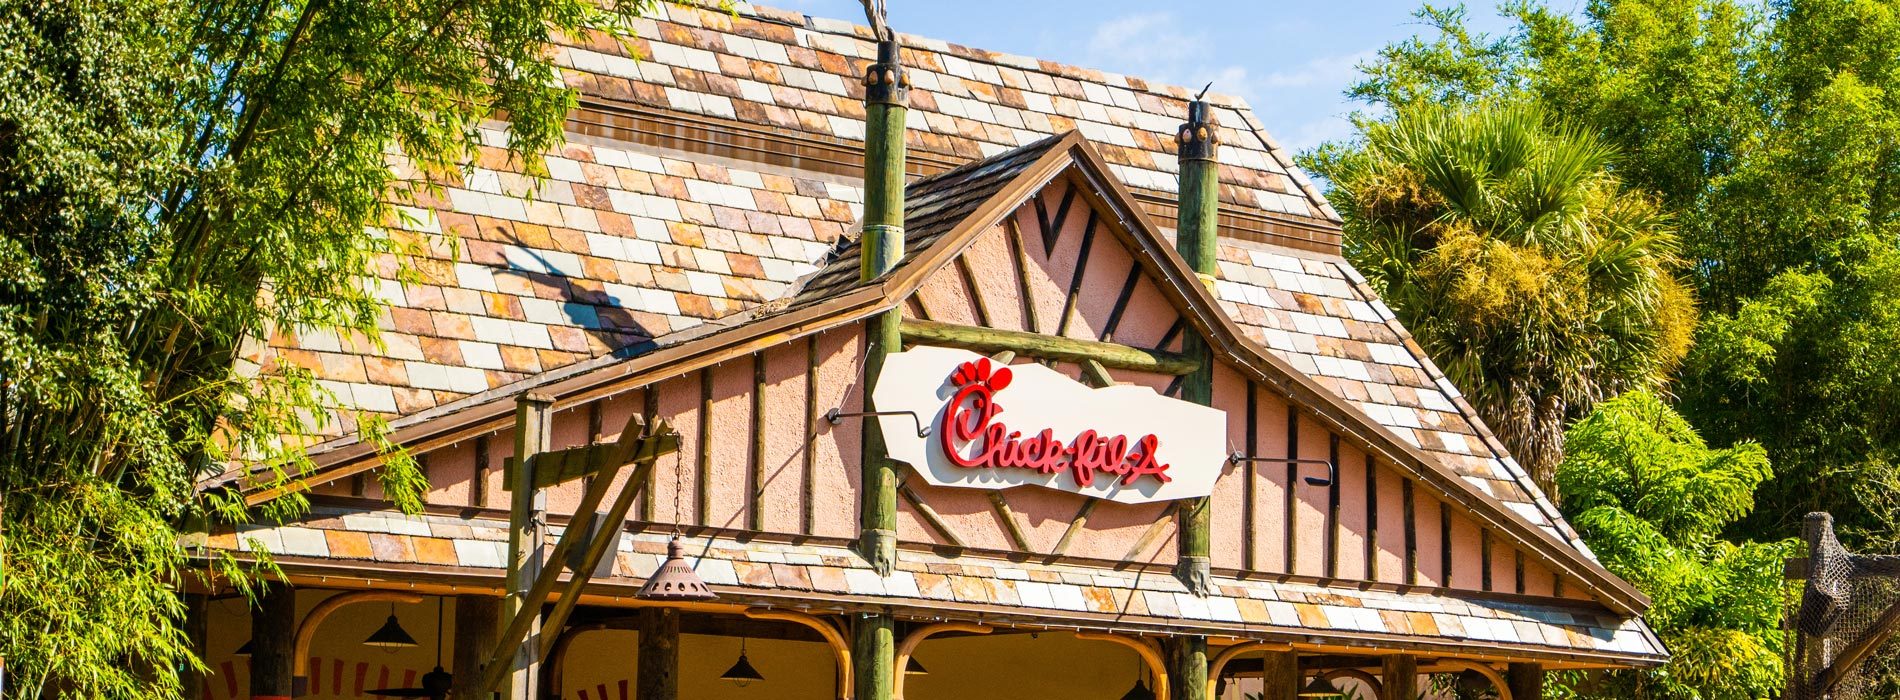 Chick-Fil-A at Busch Gardens Tampa Bay